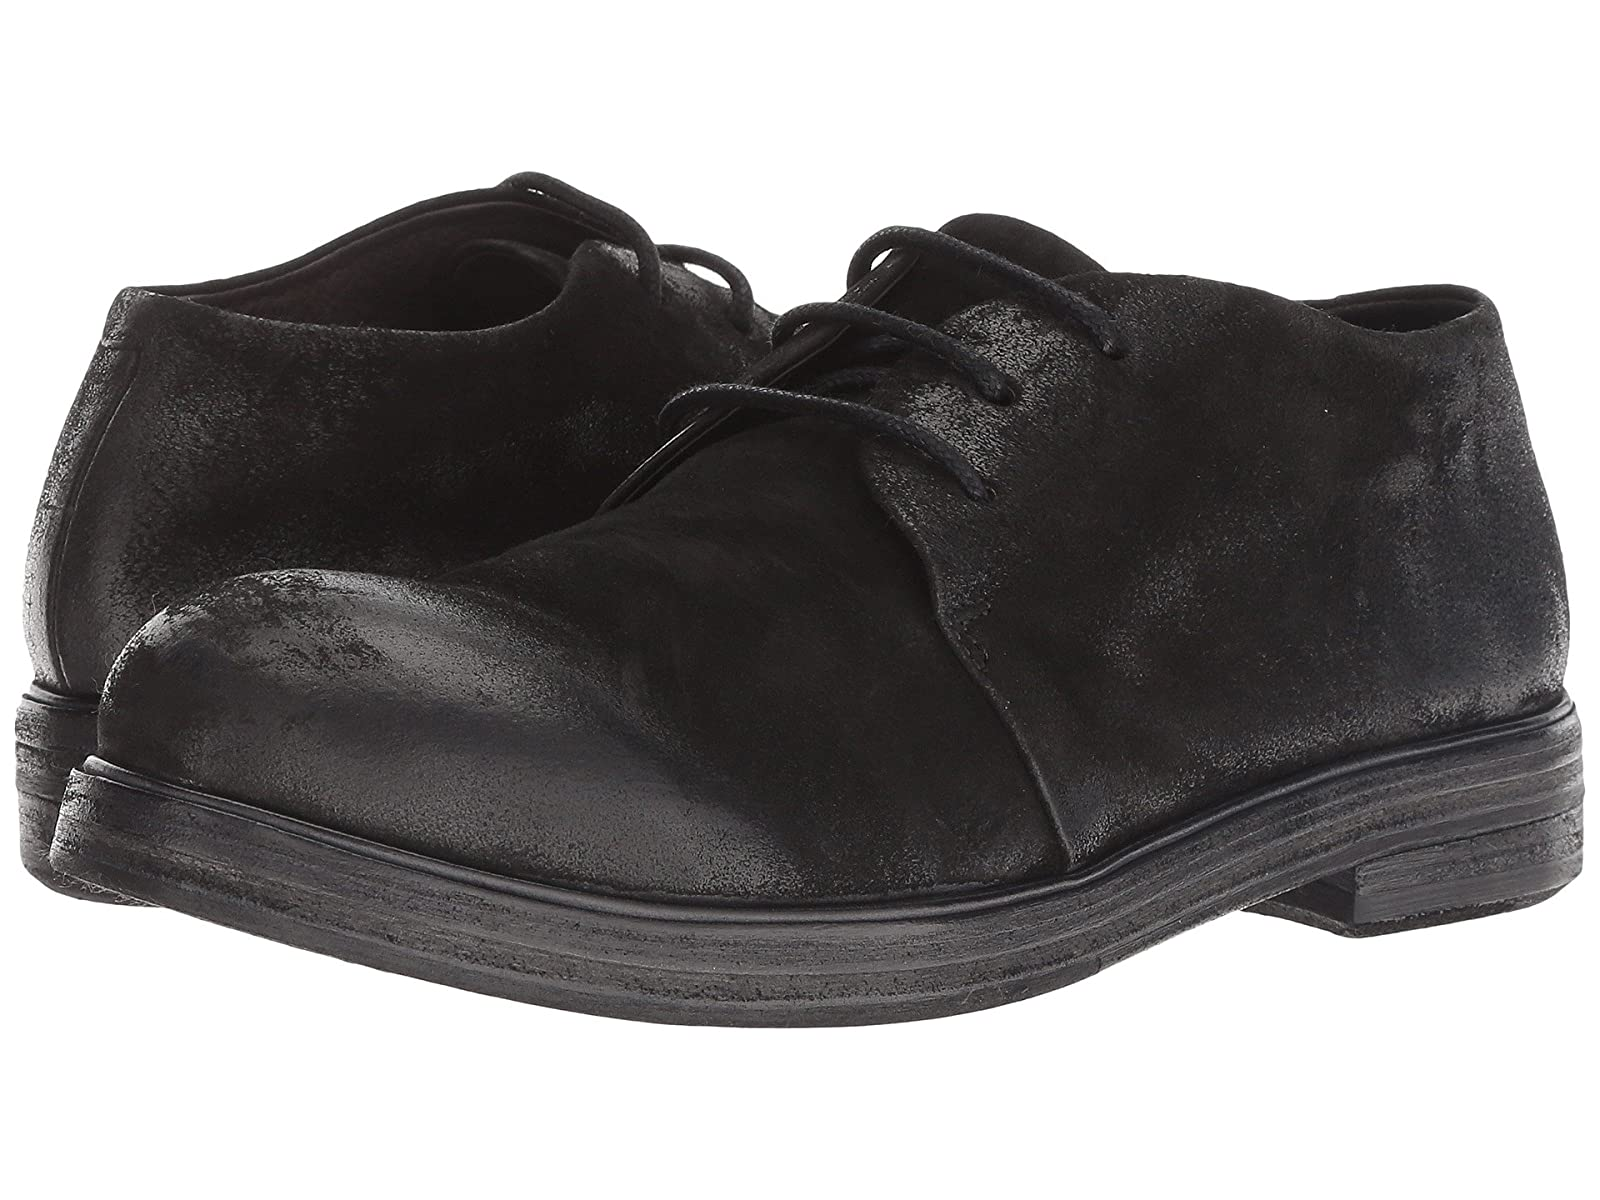 Marsell Zucca Zeppa Round Toe OxfordAtmospheric grades have affordable shoes